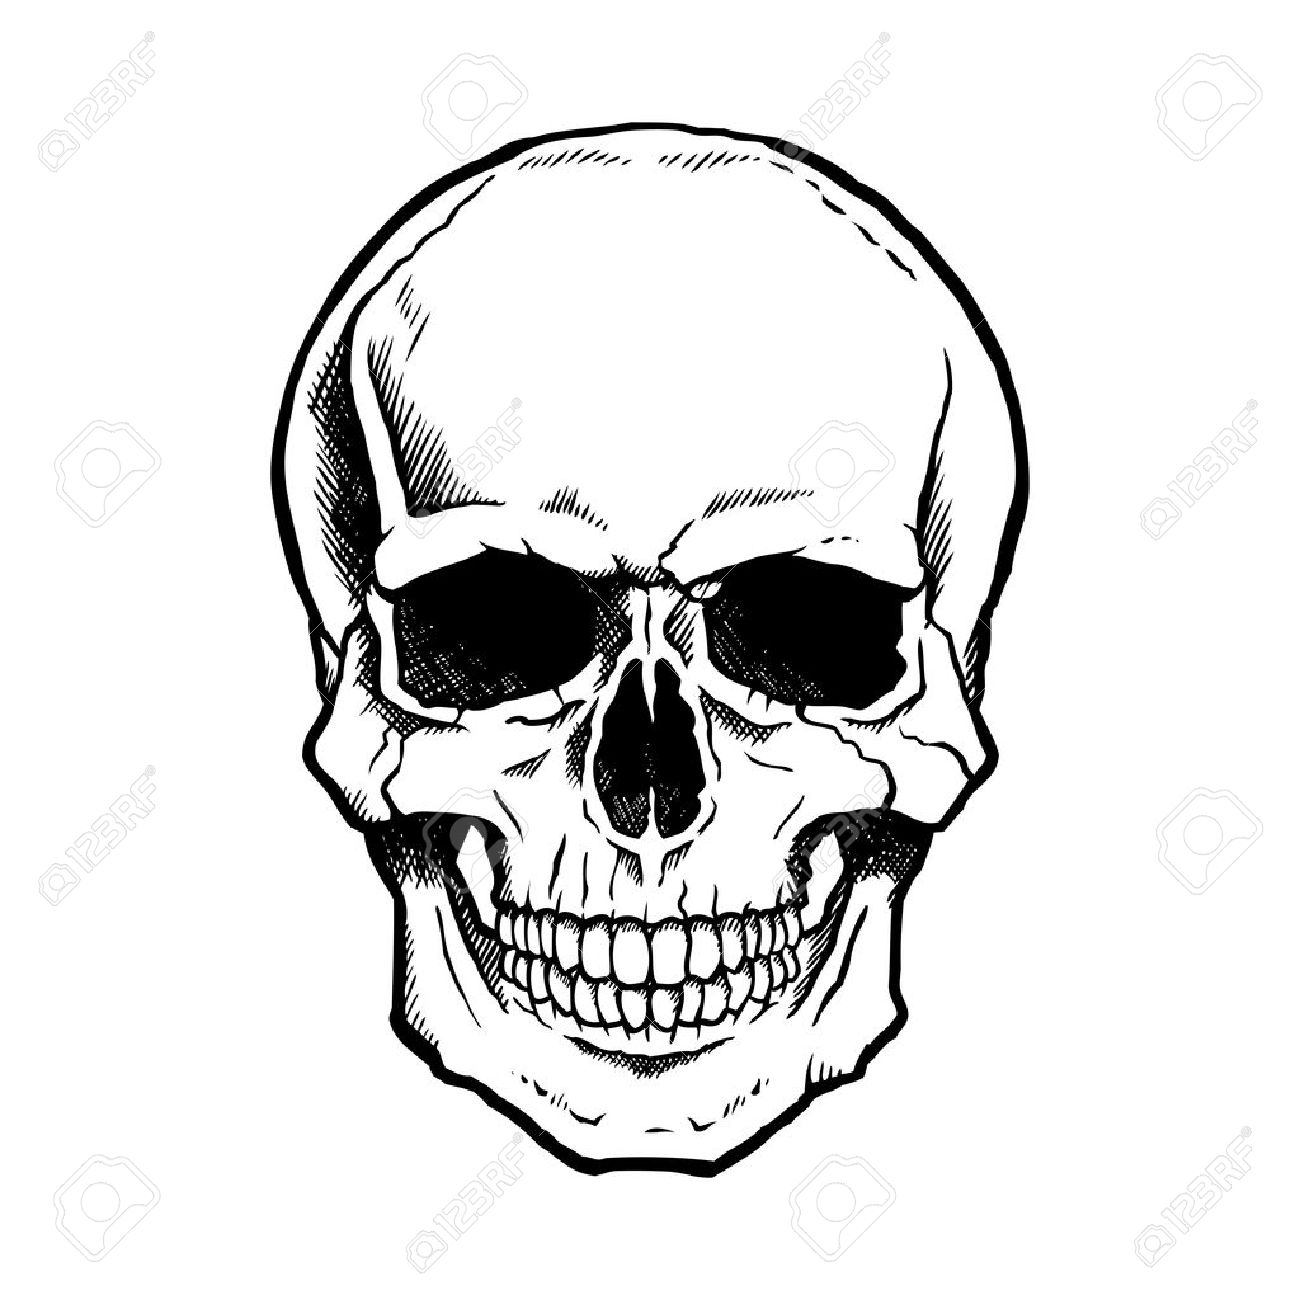 Black and white human skull with a lower jaw..